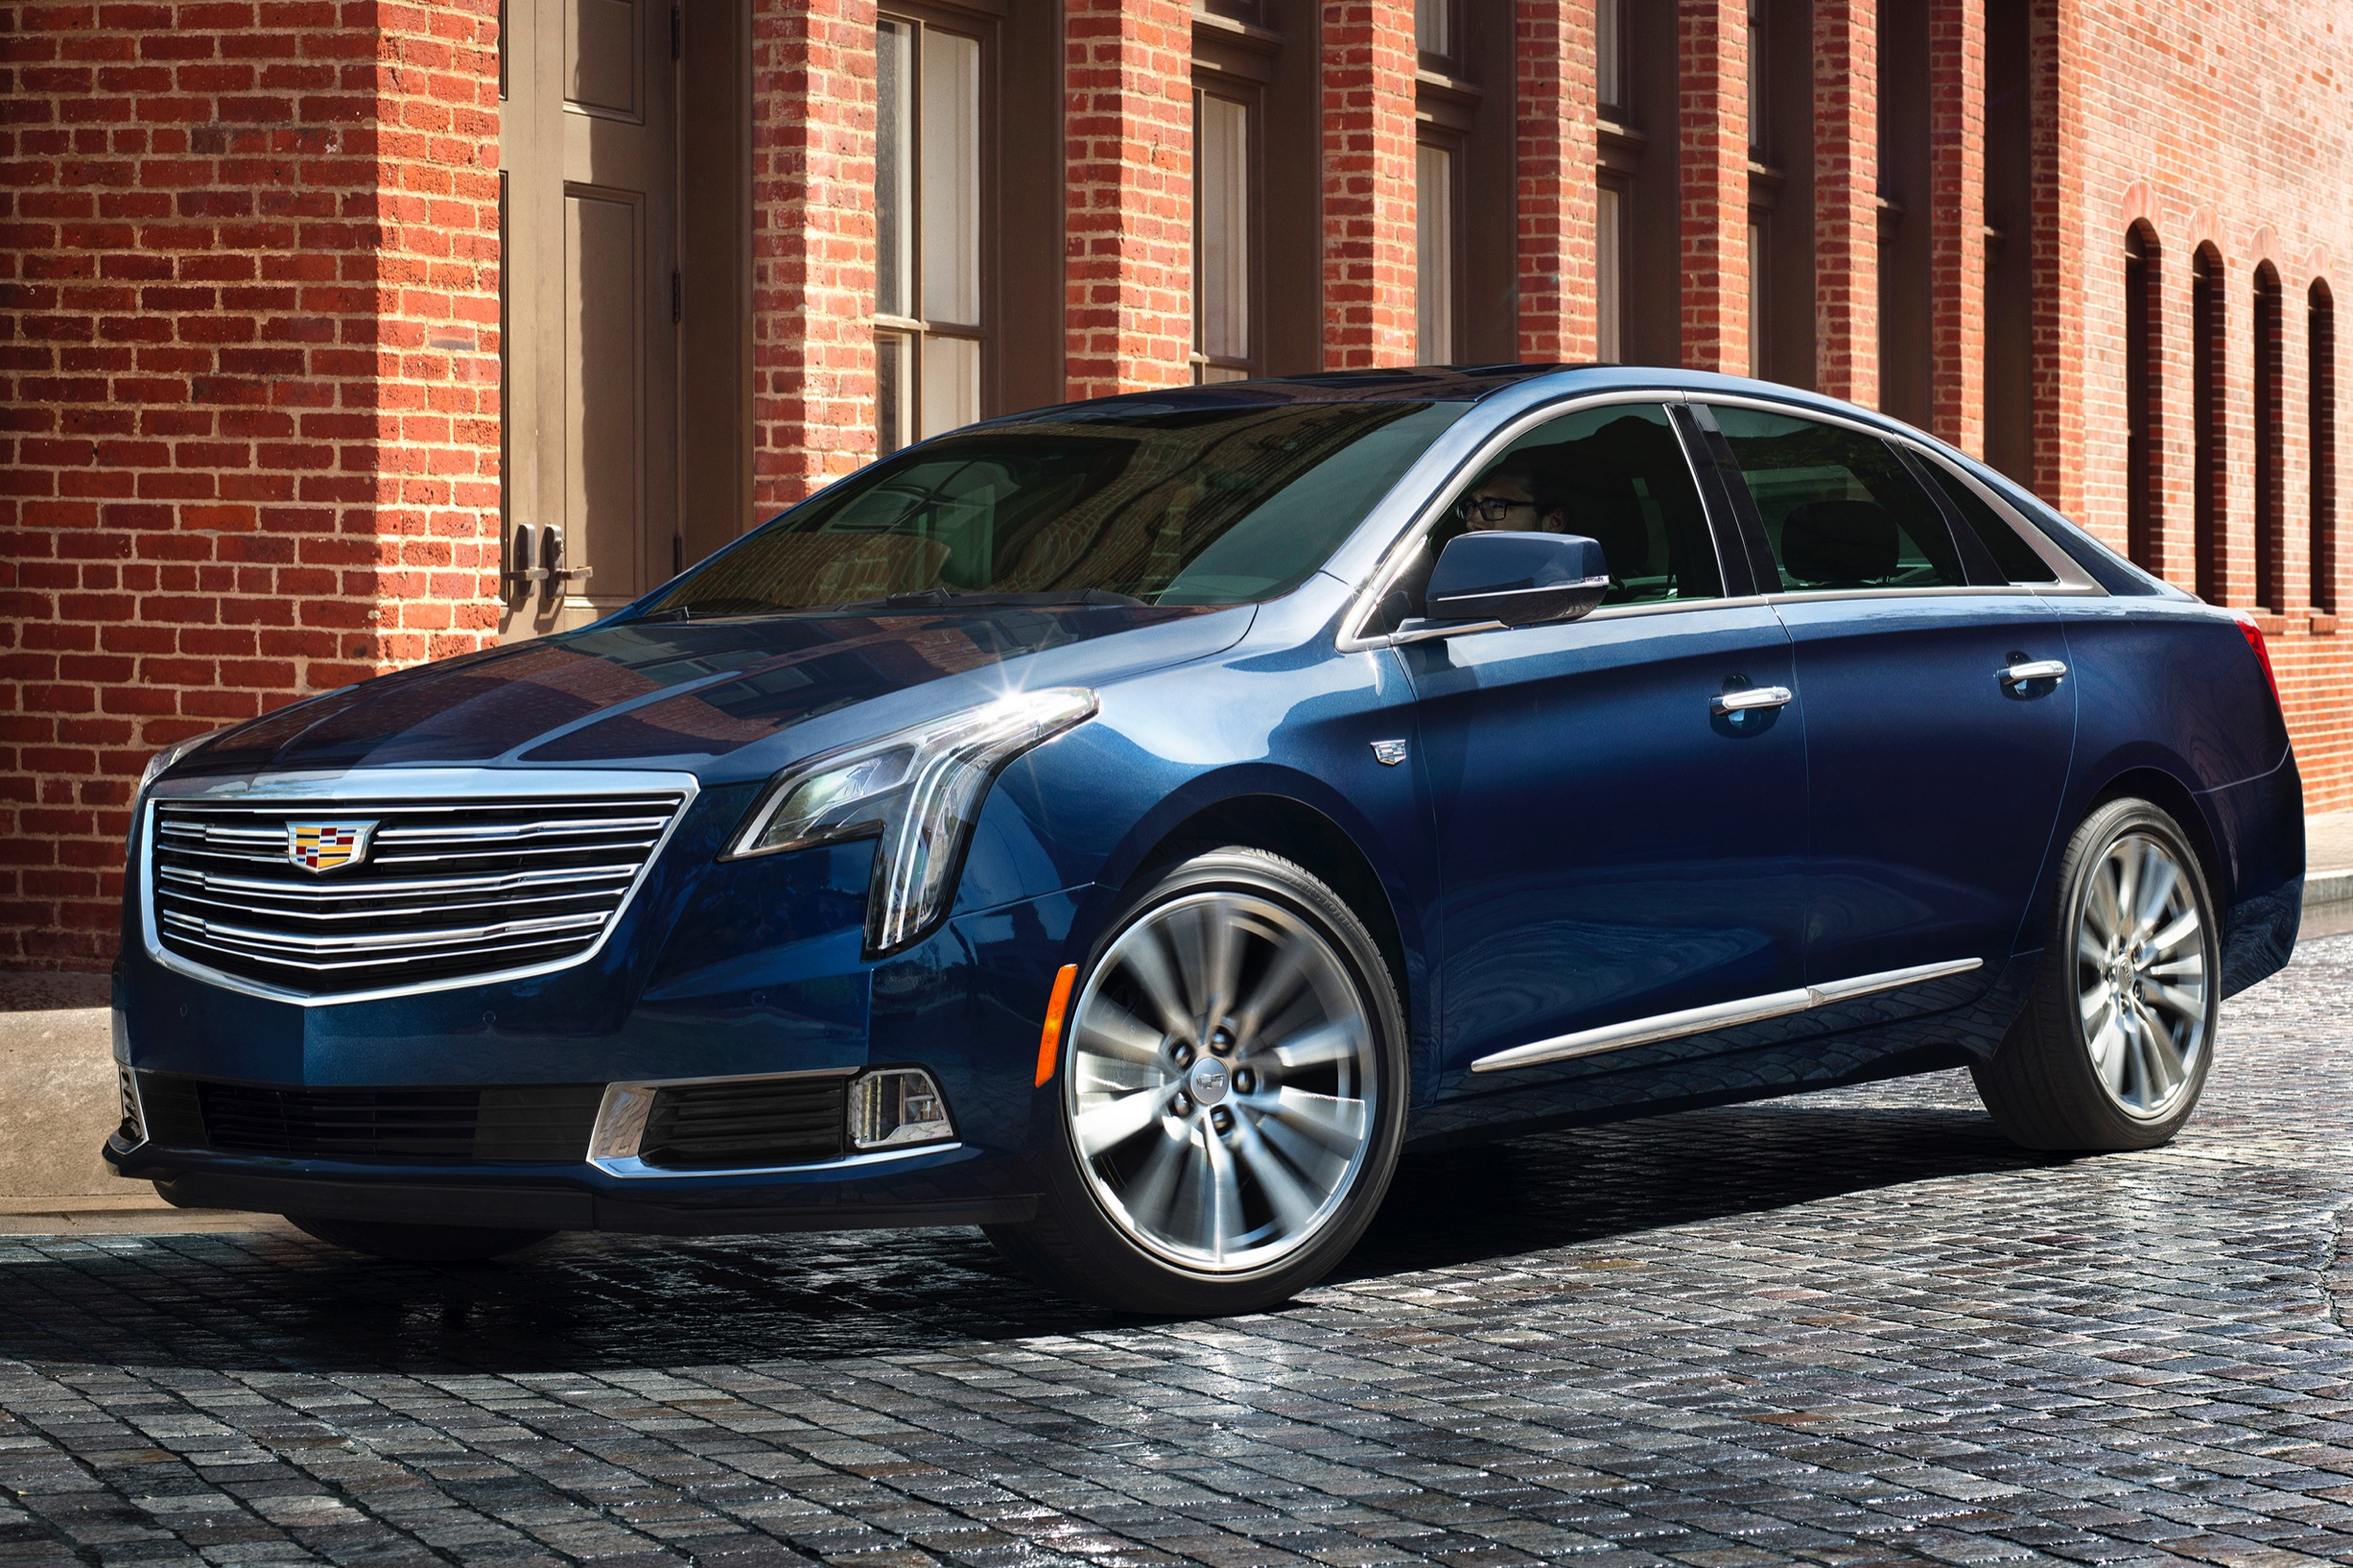 2021 Candillac Xts Concept and Review